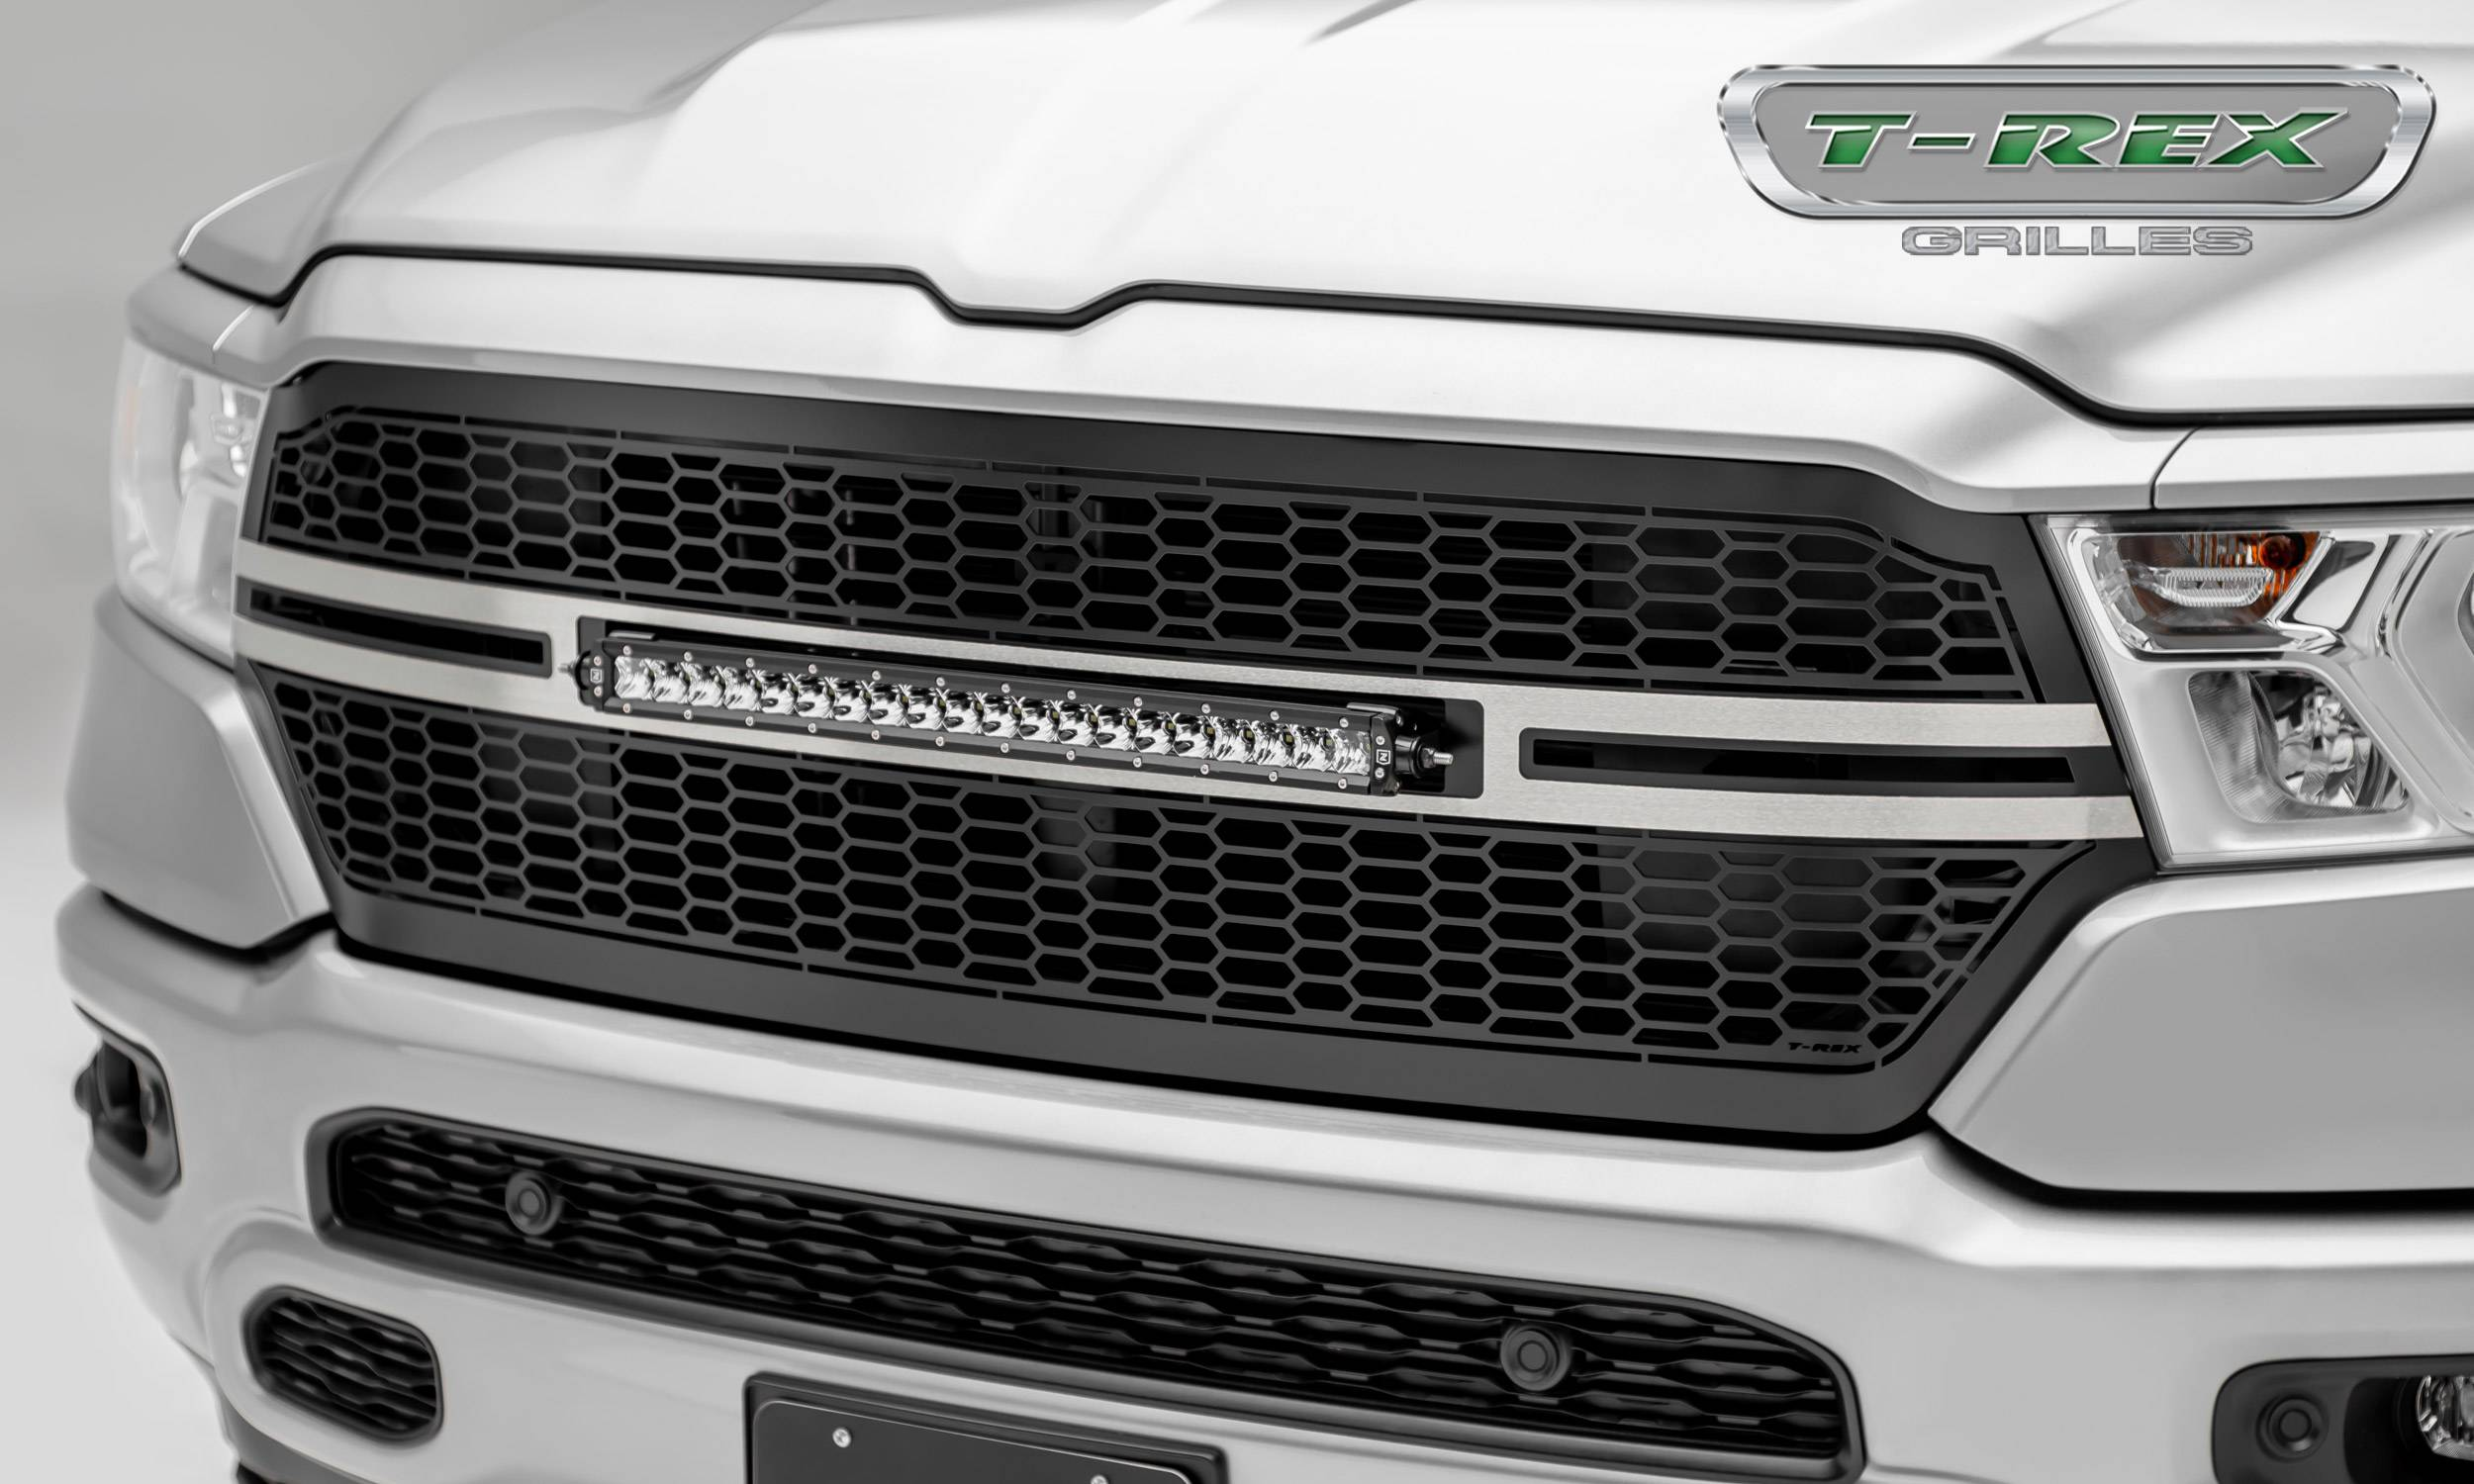 """2019 Ram 1500 Laramie, Lone Star, Big Horn, Tradesman Laser Torch Grille, Black, Brushed, 1 Pc, Replacement, Incl. (1) 20"""" LED - PN #7314651-T"""